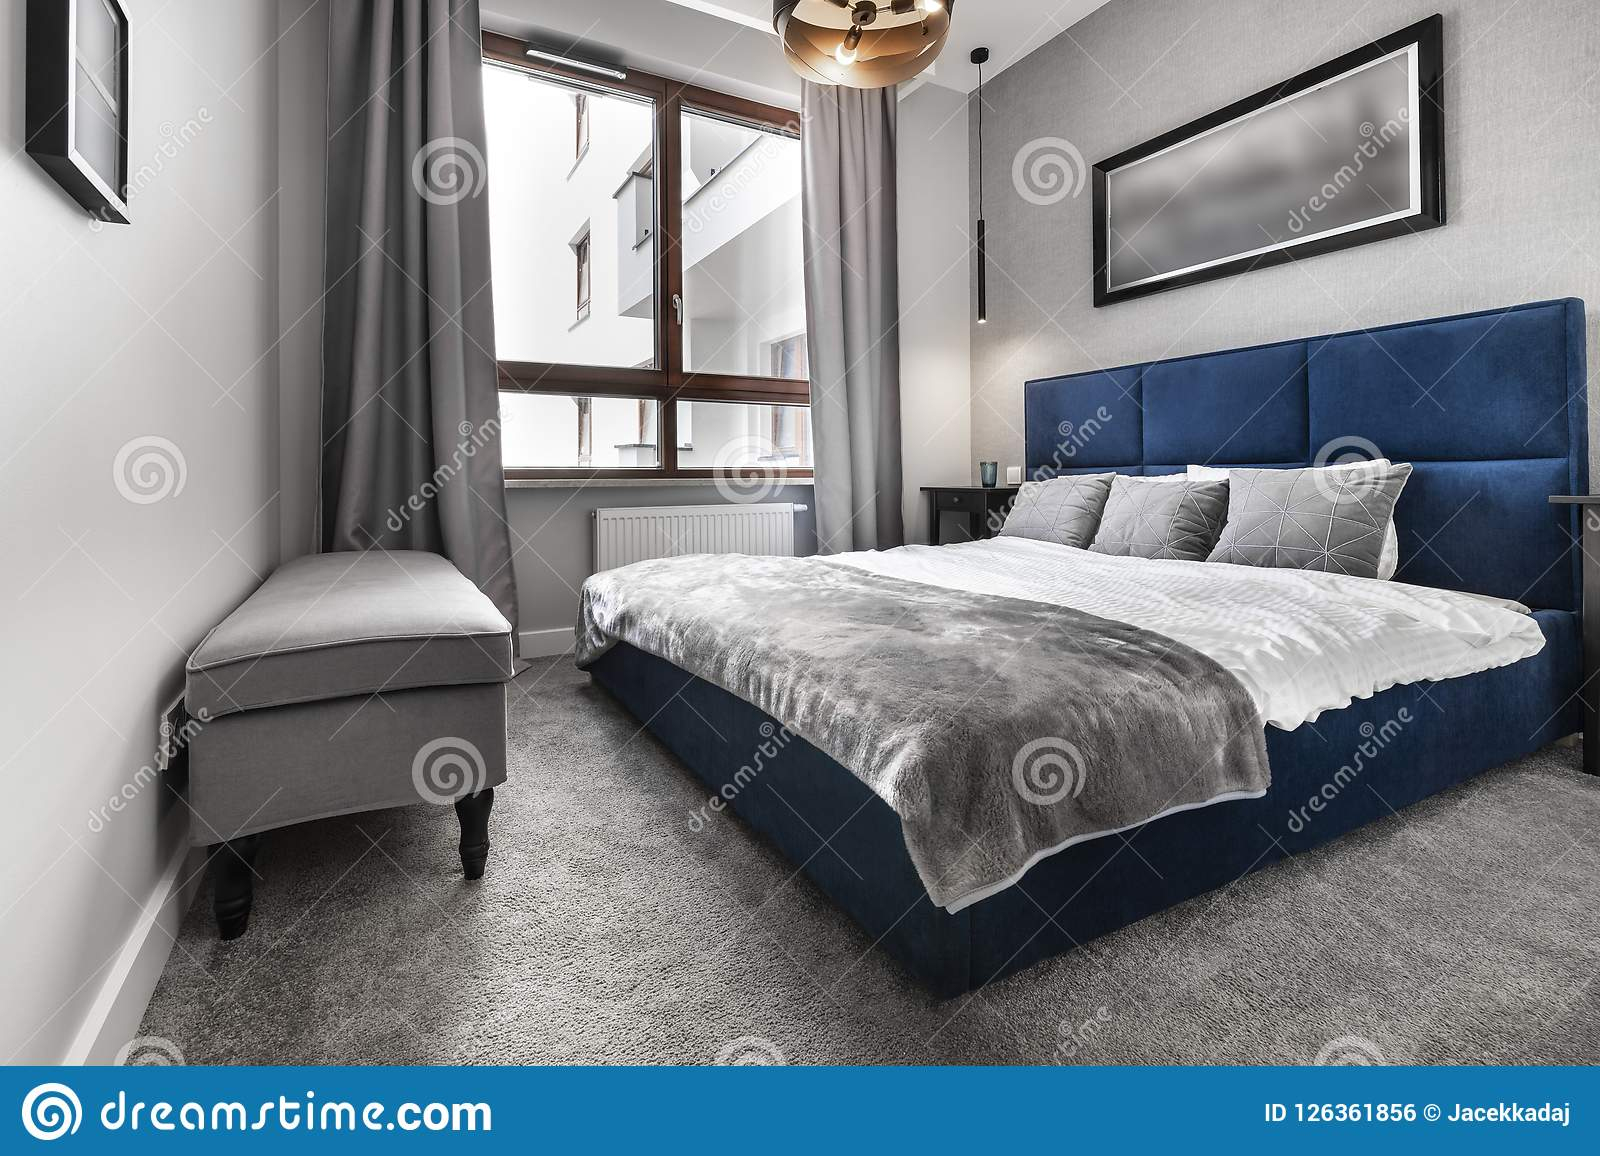 Modern bedroom with blue bed